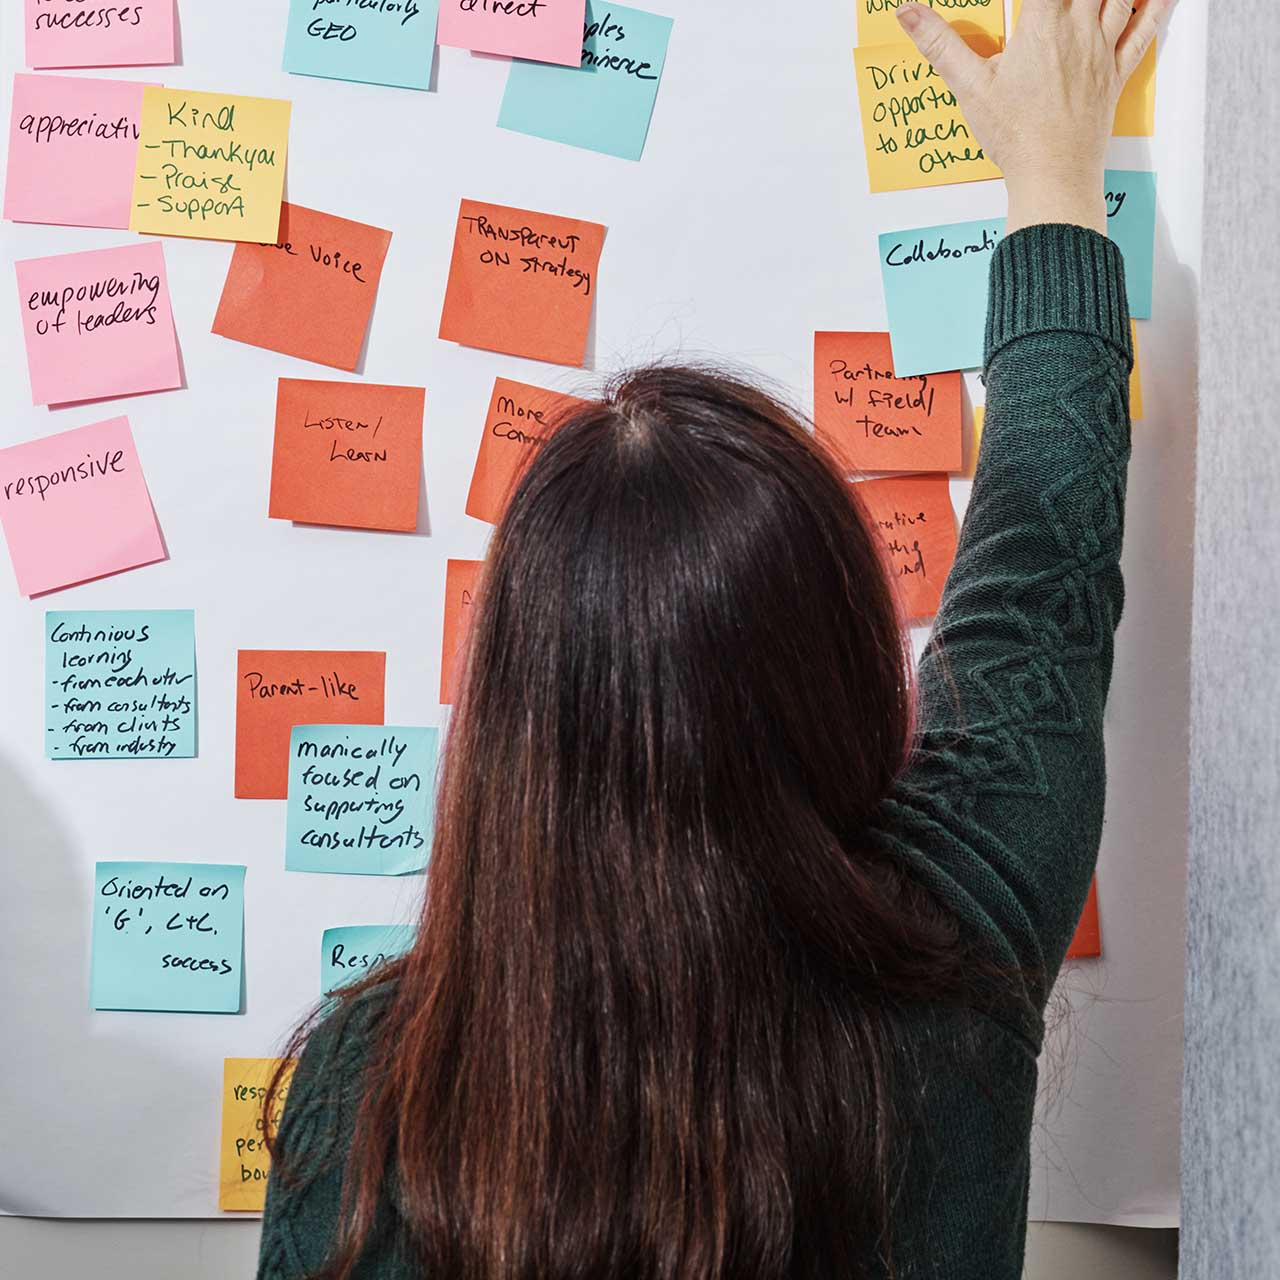 Woman putting sticky notes on white board.